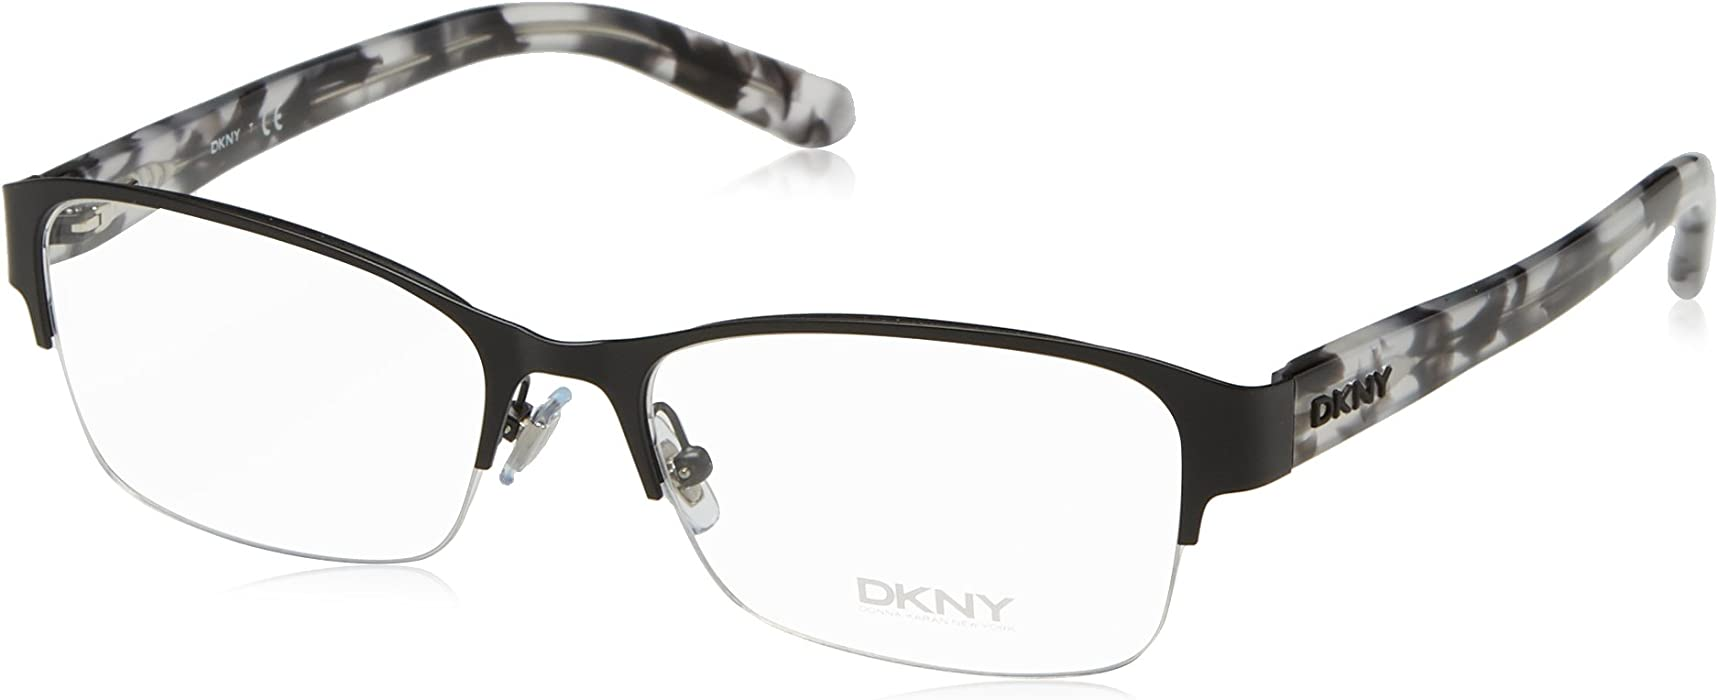 DKNY DY5651 Eyeglass Frames 1004-53 - Matte Black at Amazon Men\'s ...